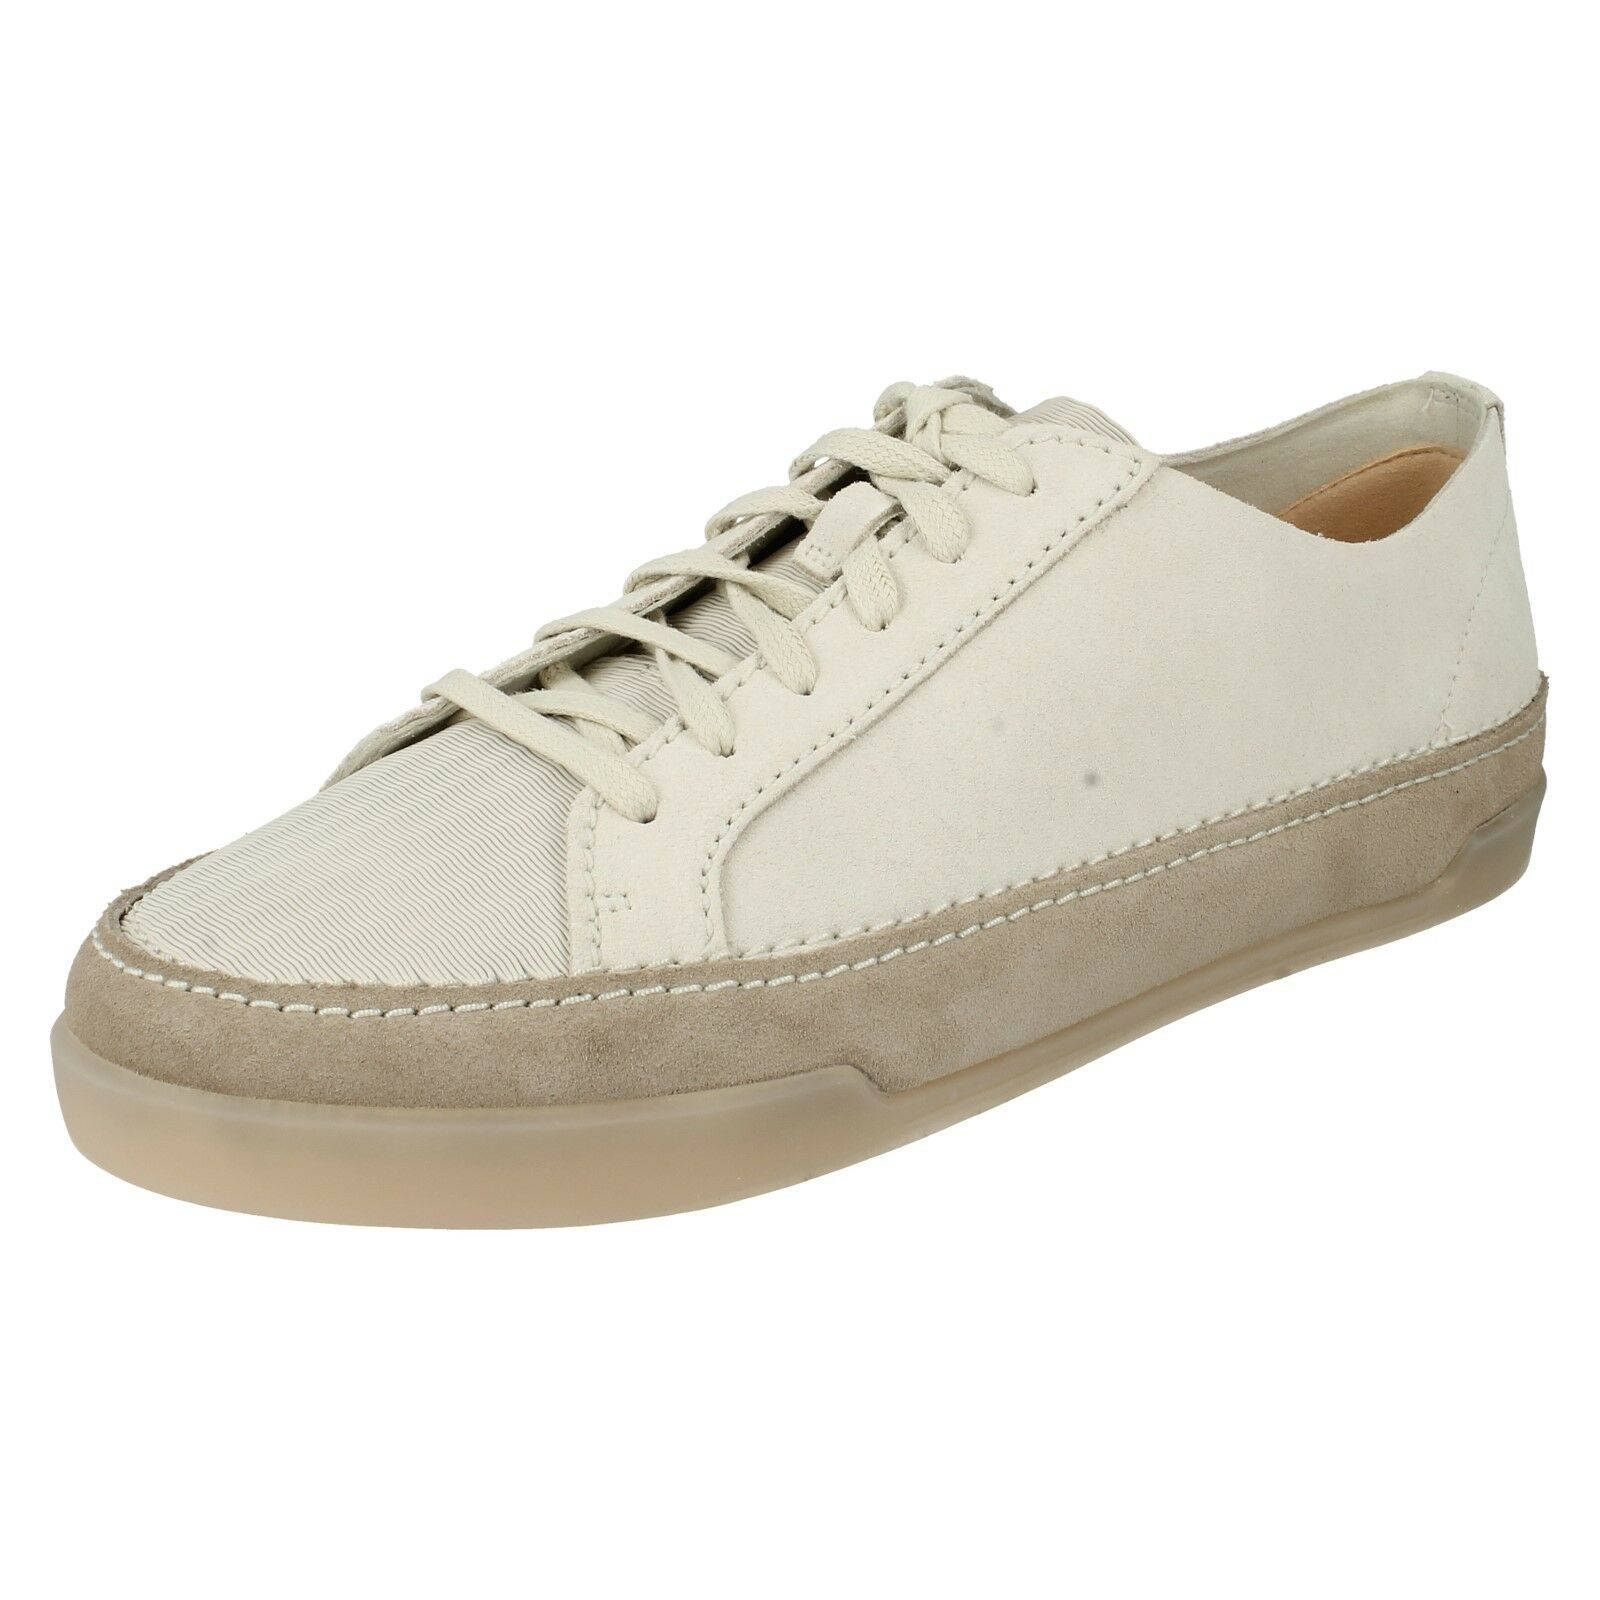 HIDI PUMPS HOLLY LADIES CLARKS LEATHER FLAT LACE UP PUMPS HIDI TRAINERS CASUAL SPORTS Schuhe 8e9f0d